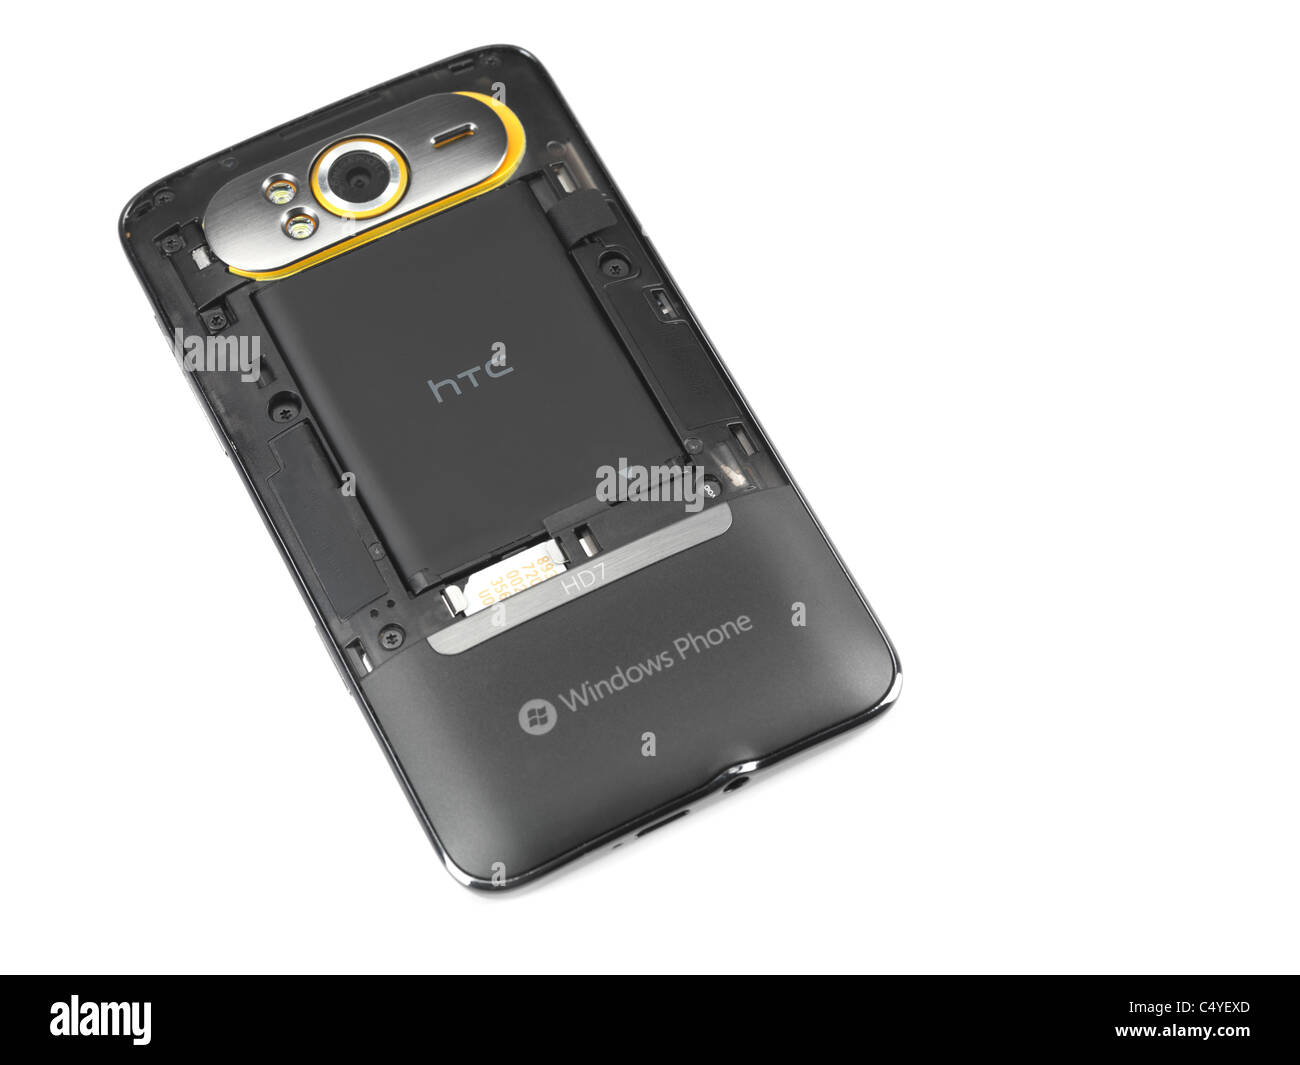 Windows 7 phone. HTC HD7 smartphone with a rear panel taken off showing the  lithium ion battery - Stock Image